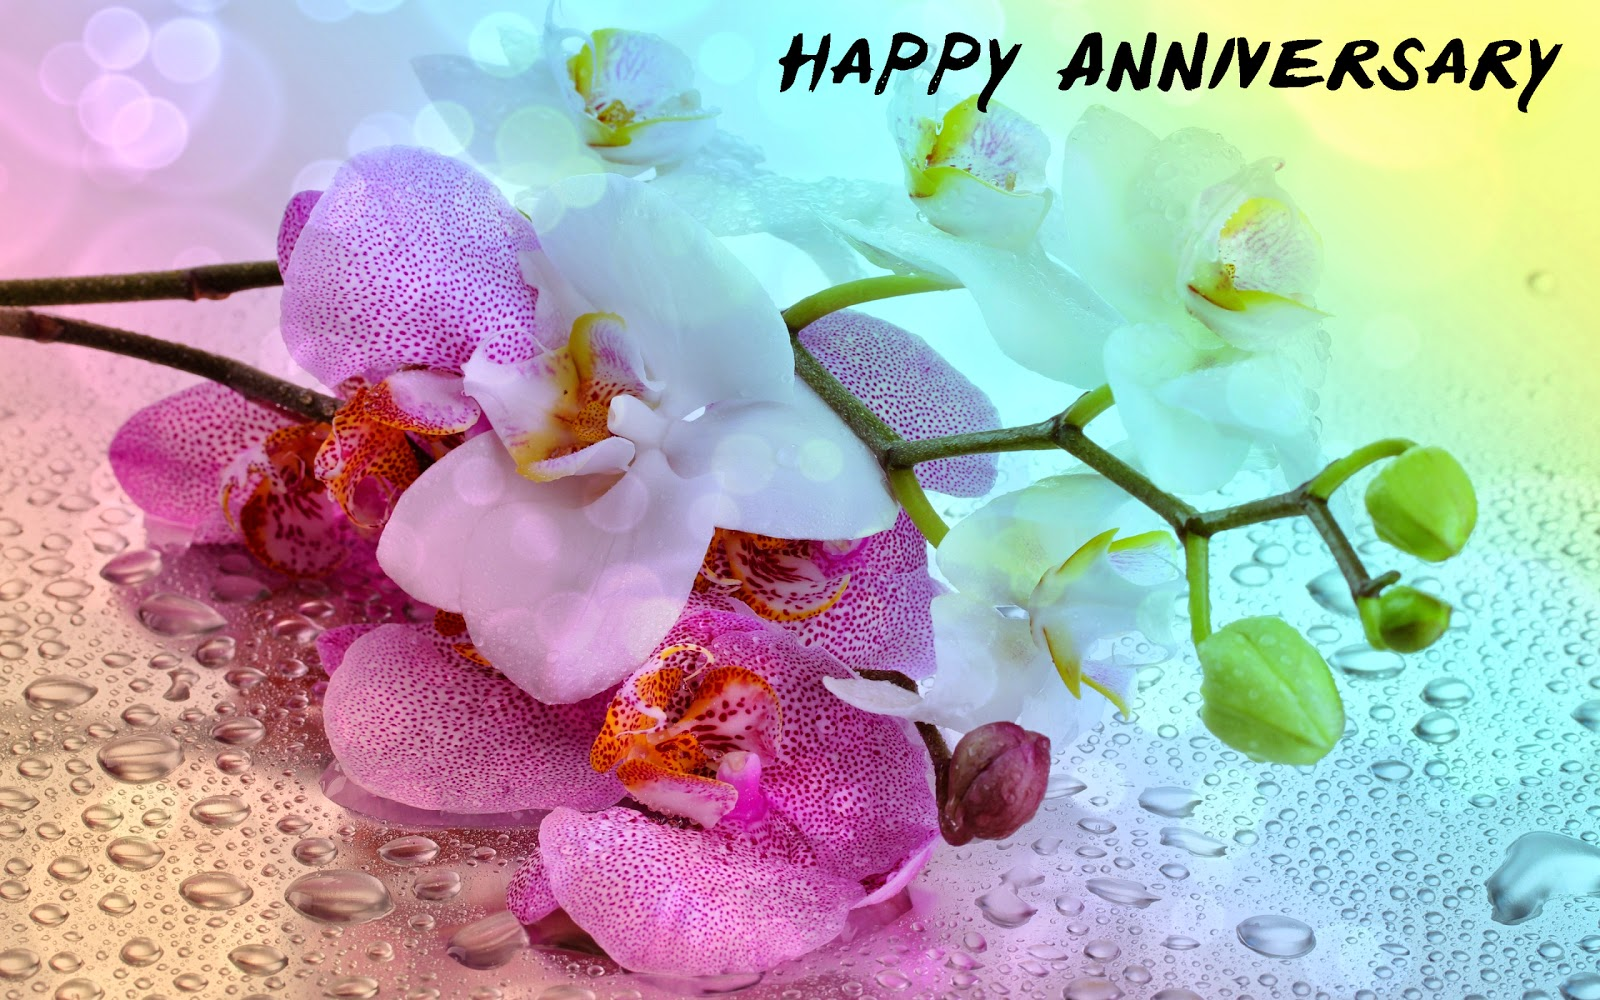 Special Anniversary HD Images, Best Wishes Cards  Festival Chaska